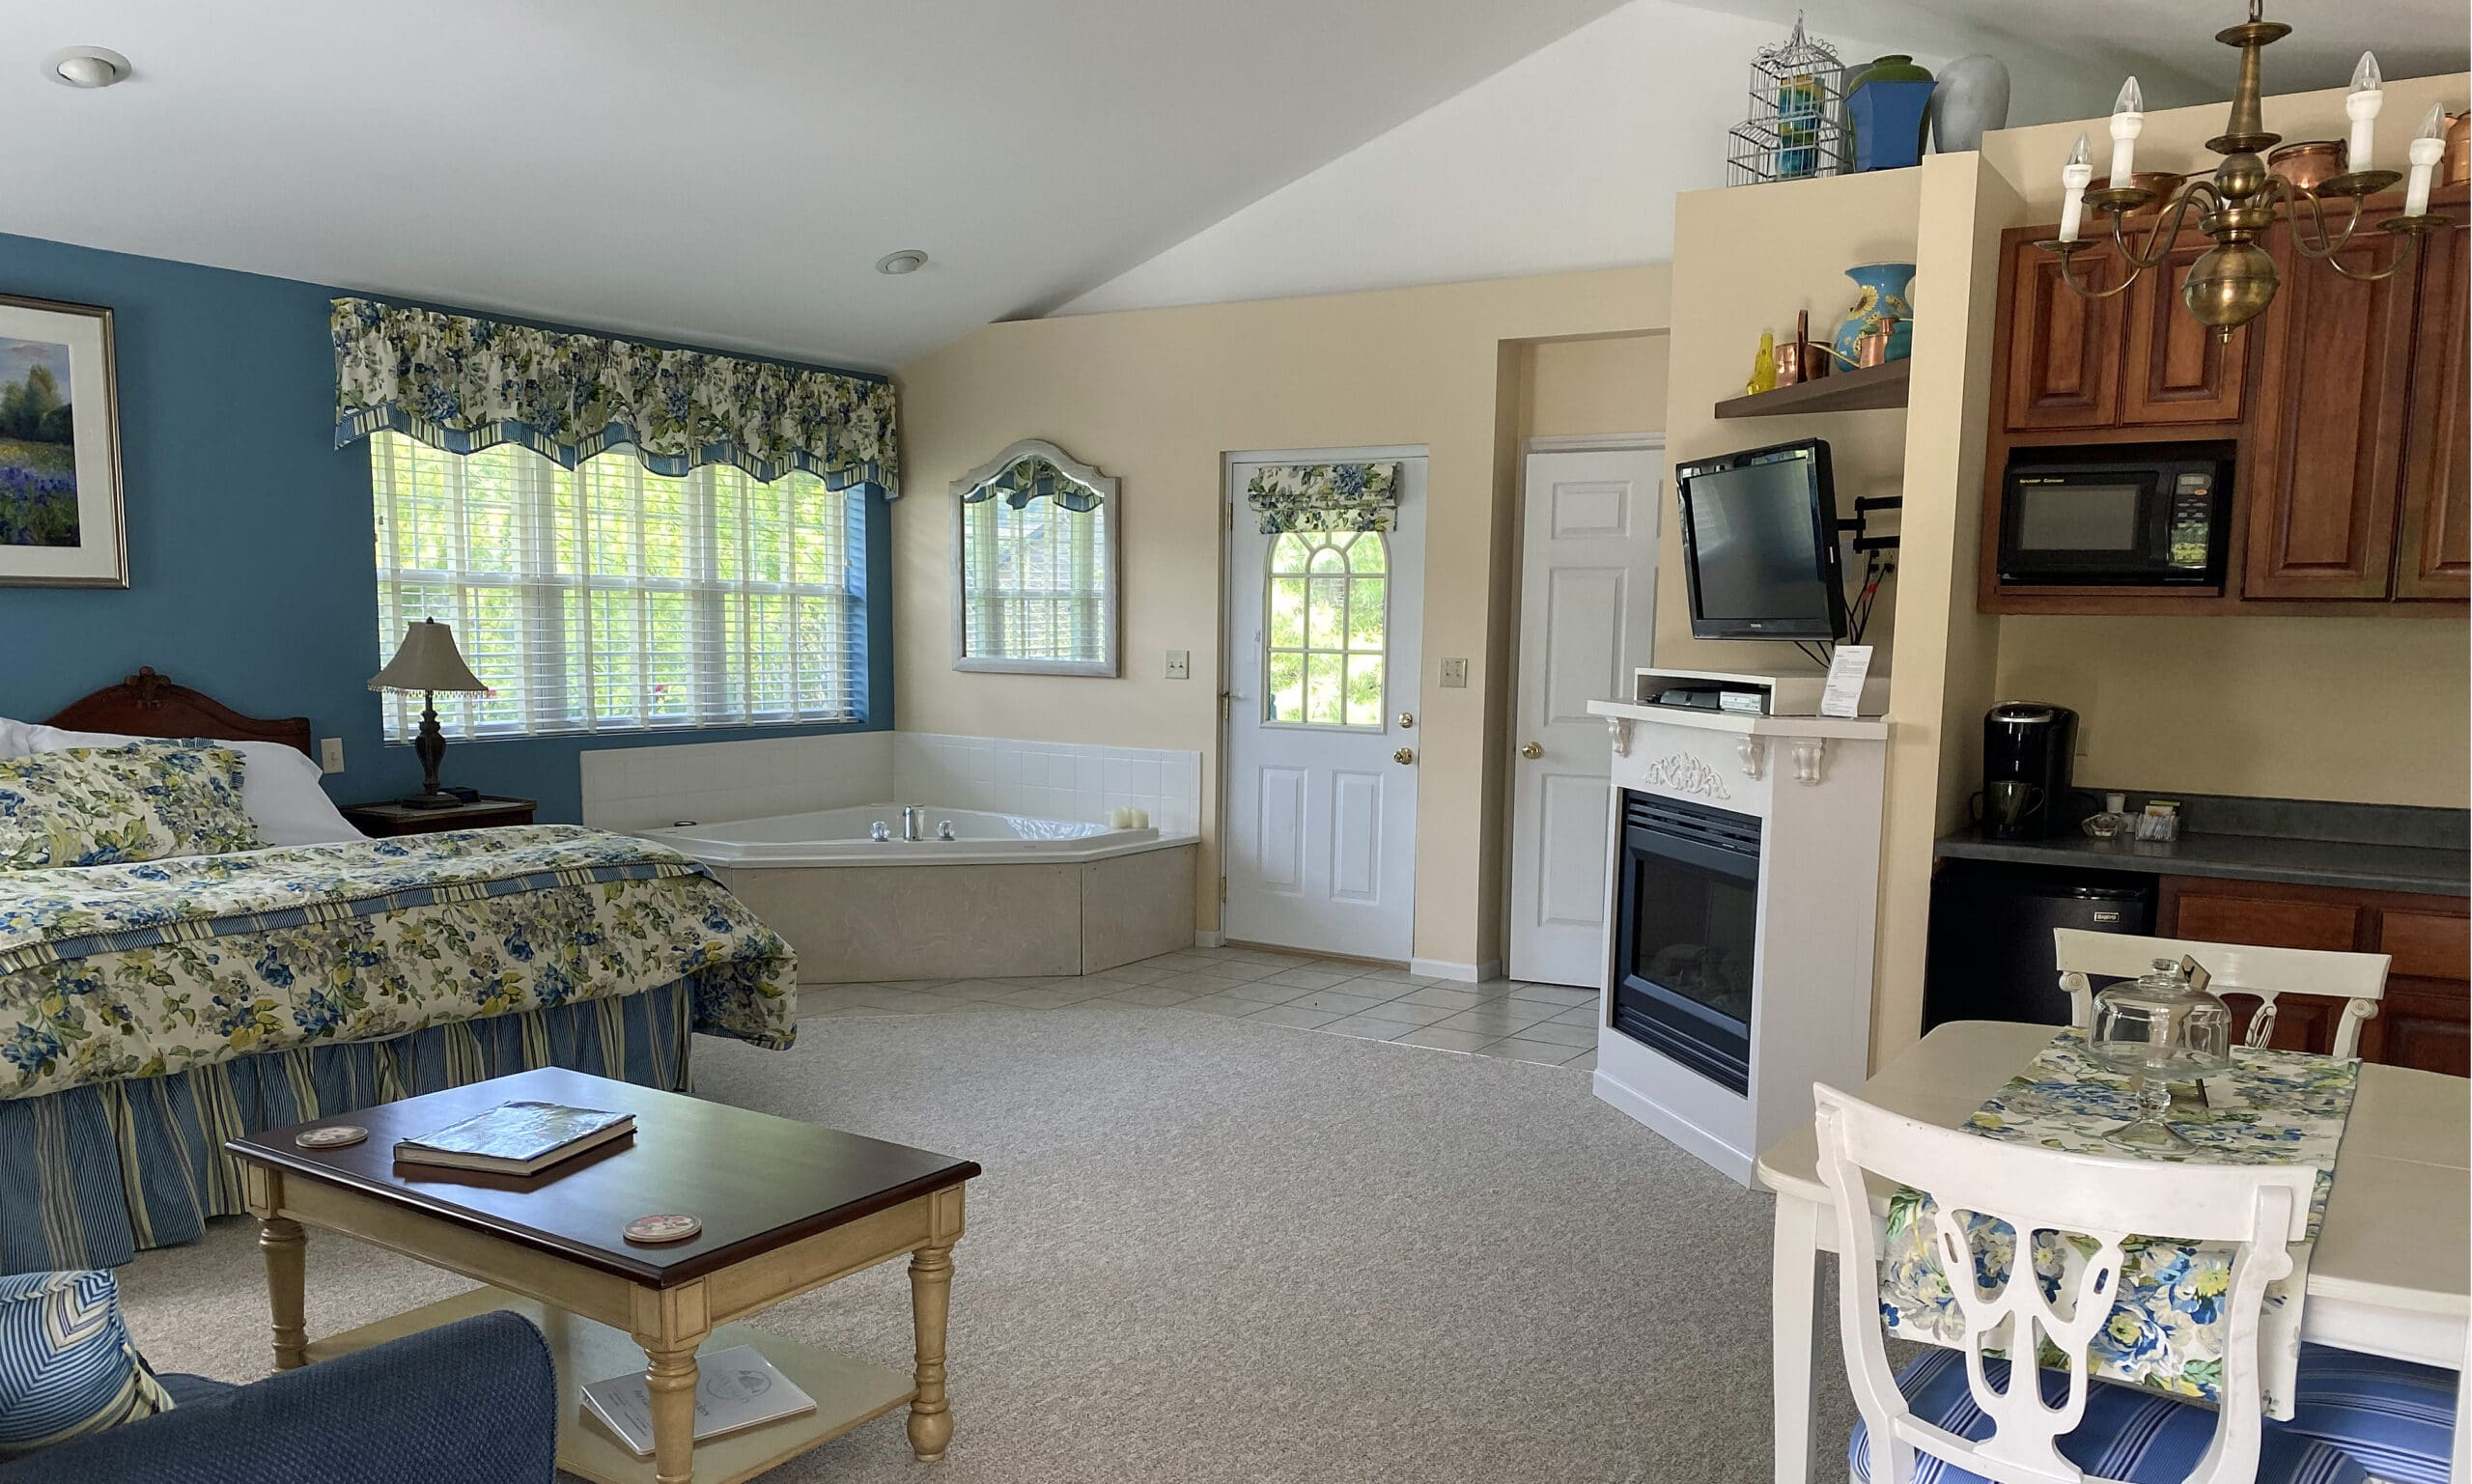 bedh, whirlpool tub, fireplace and dining table